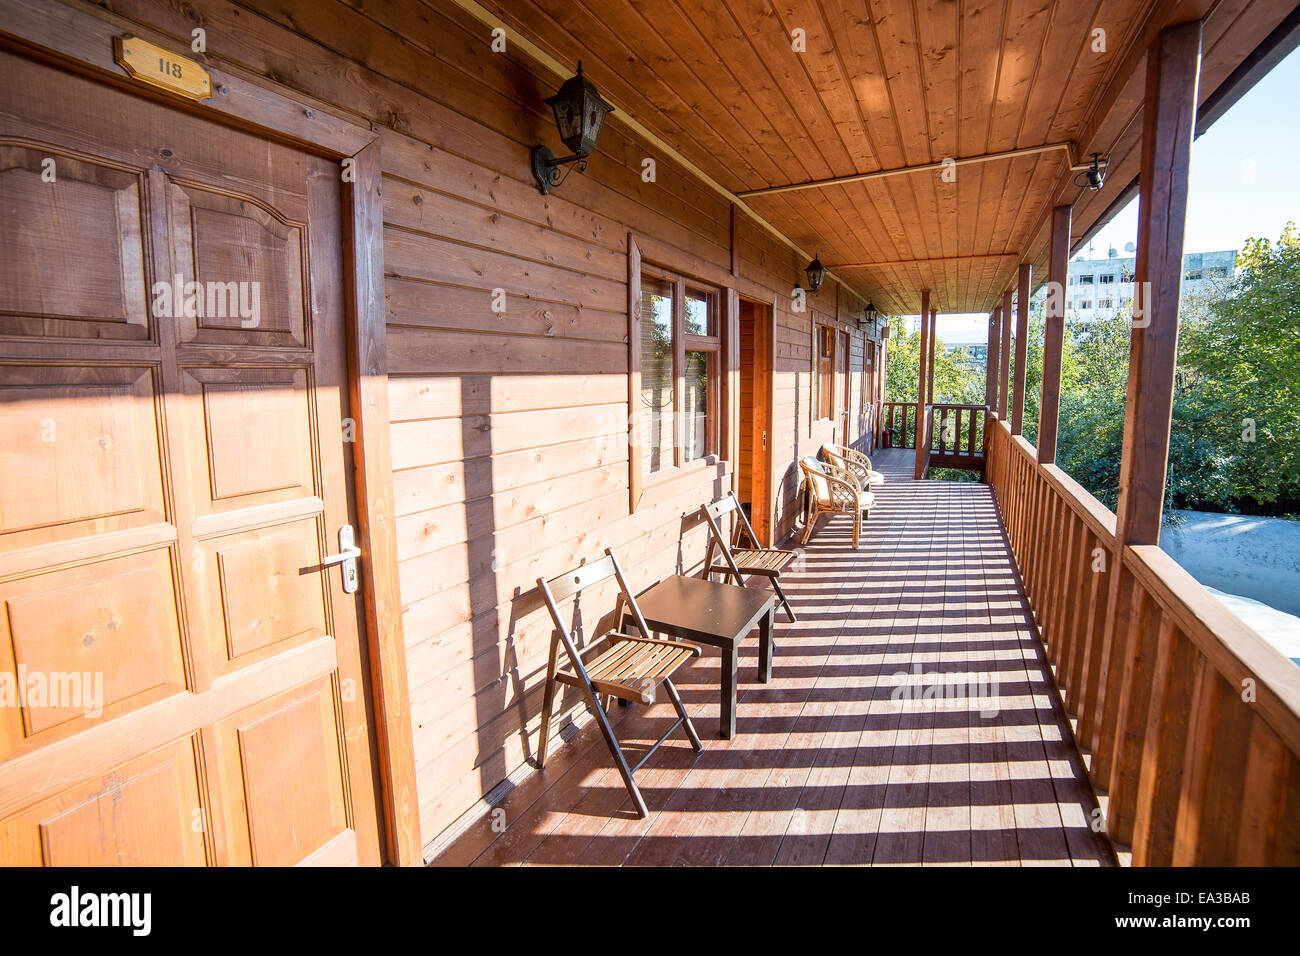 Veranda of wooden house, Gudauta, Abkhazia - Stock Image